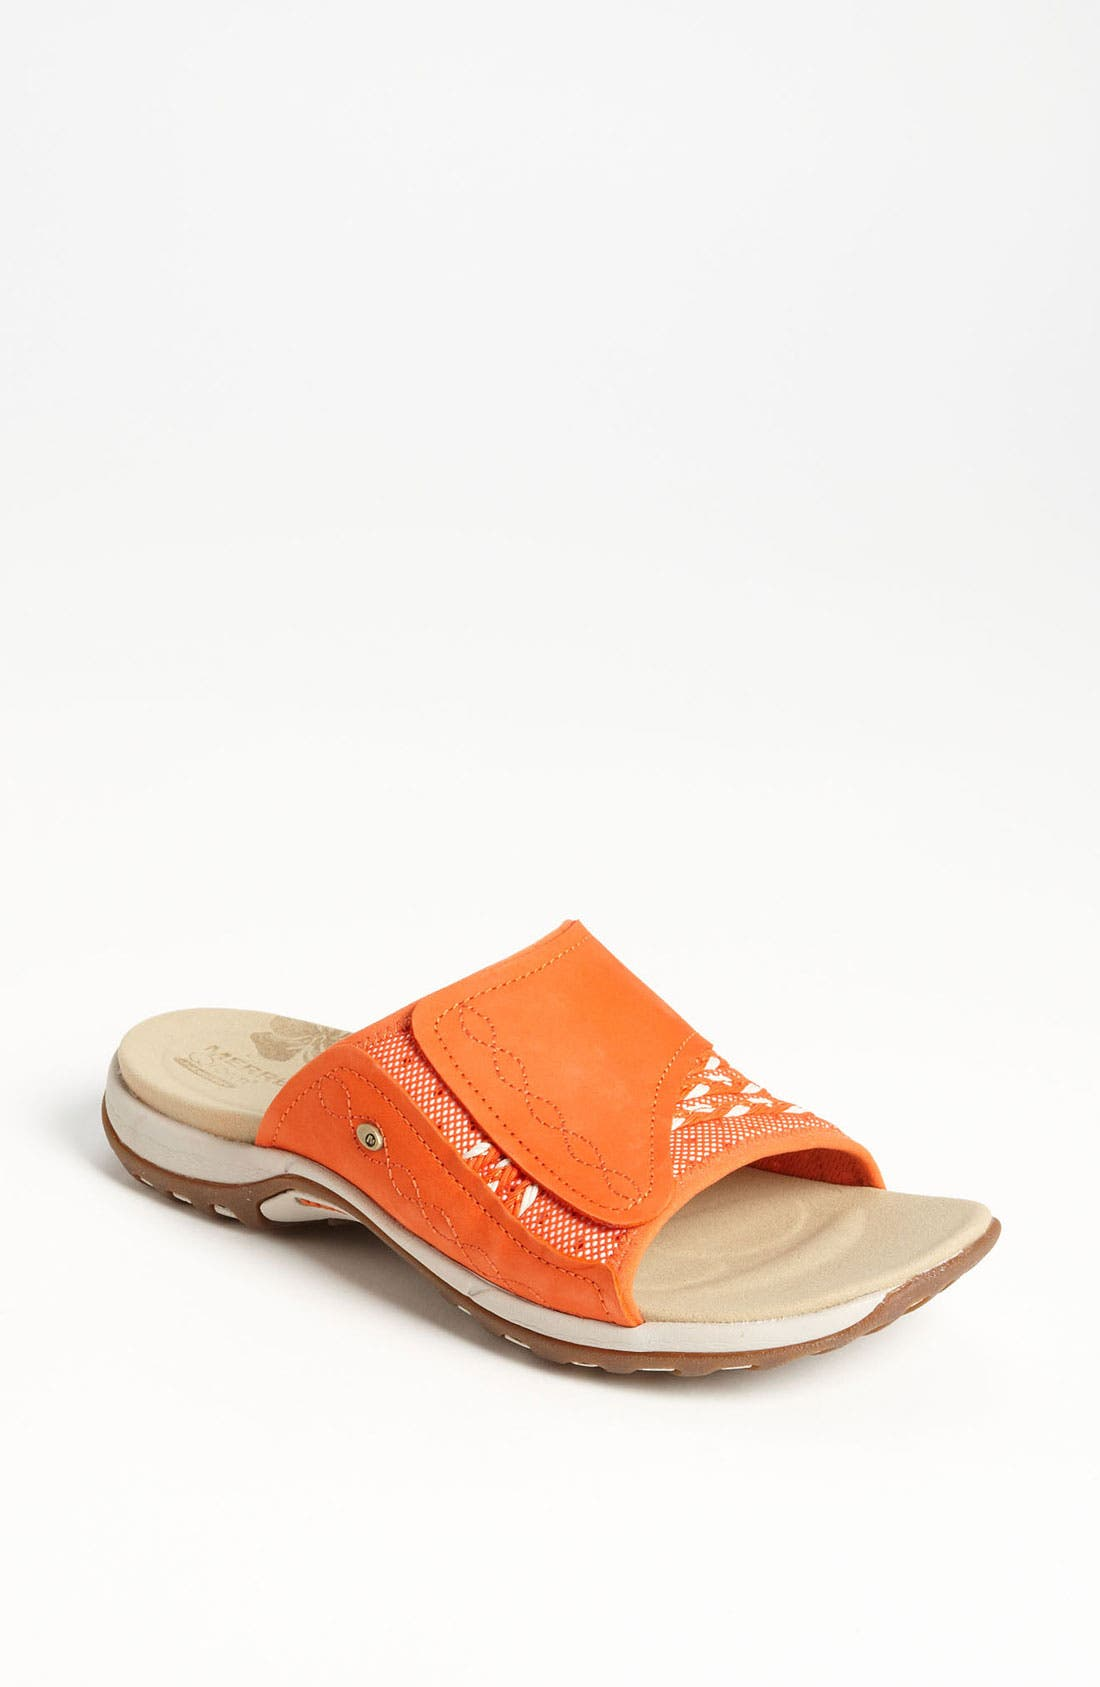 Alternate Image 1 Selected - Merrell 'Lilyfern' Sandal